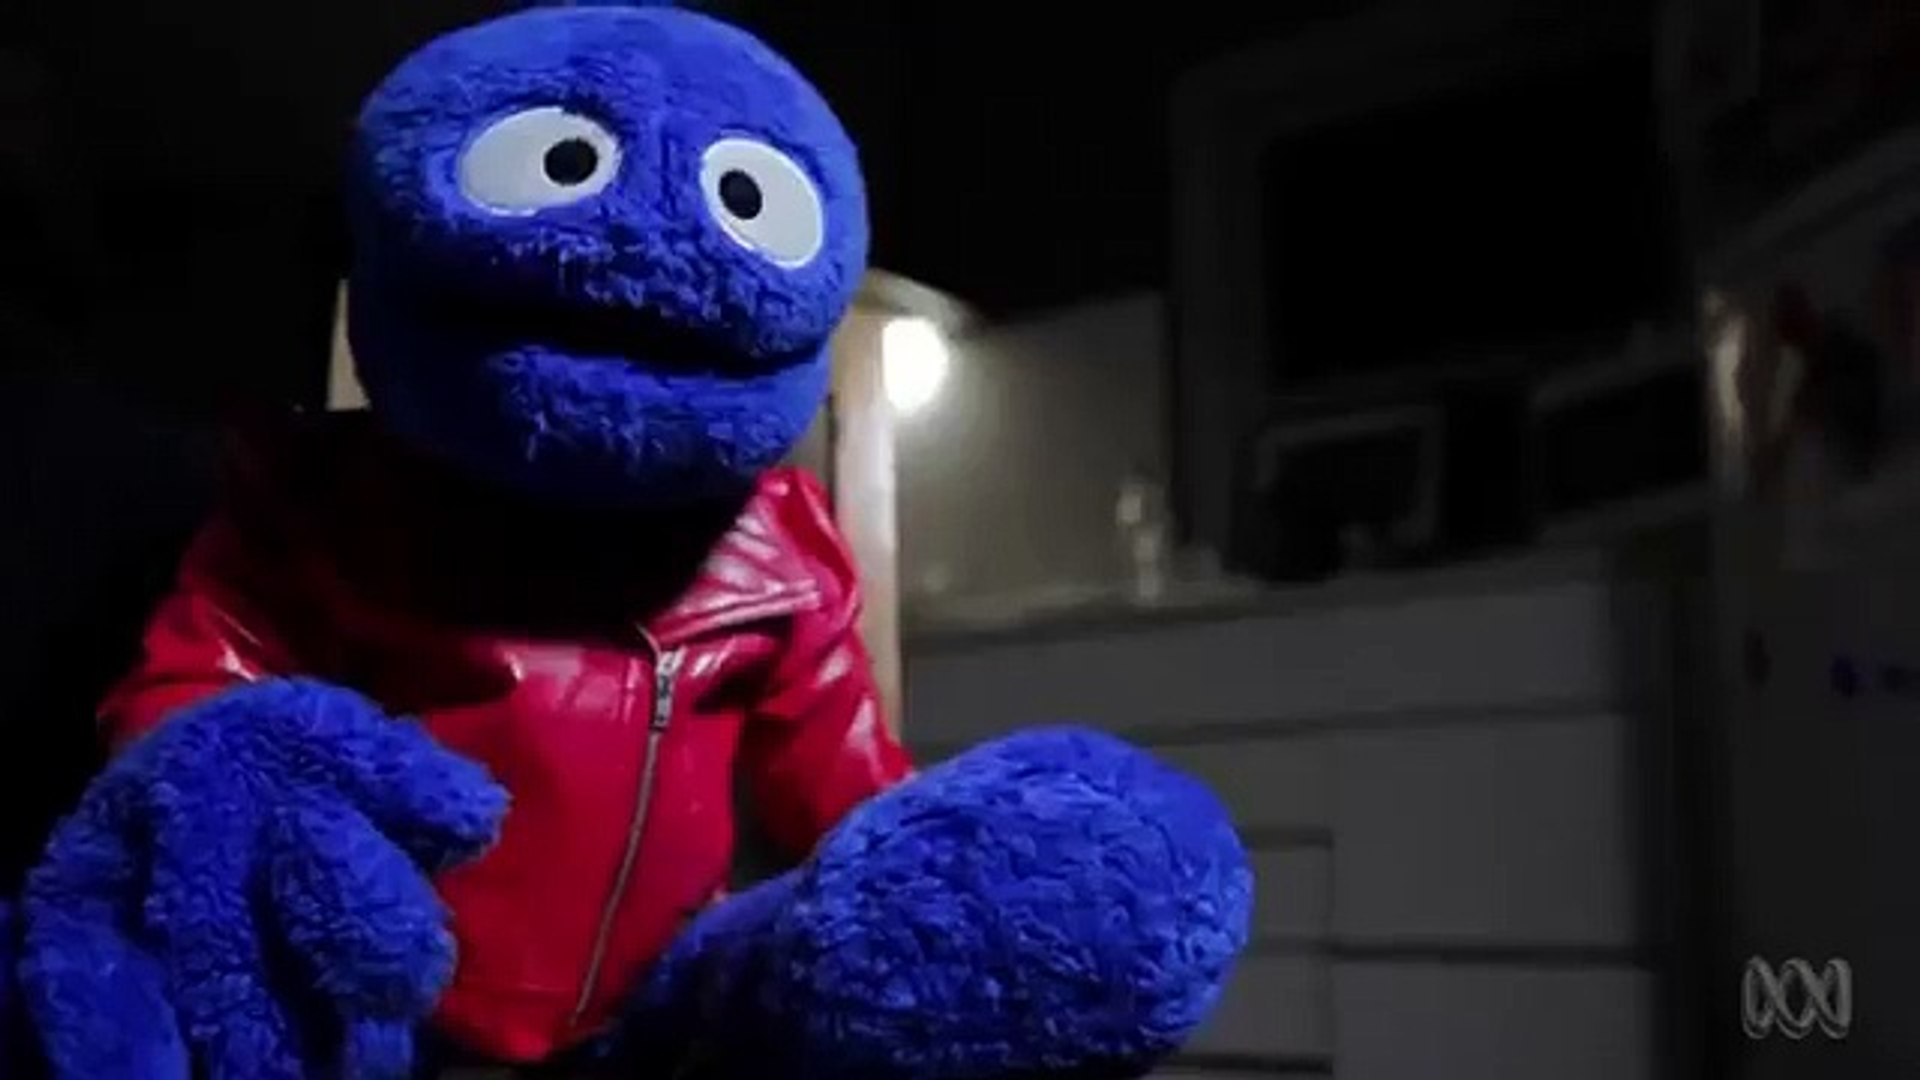 Puppets vs People - Interview with Bluey - Fresh Blood